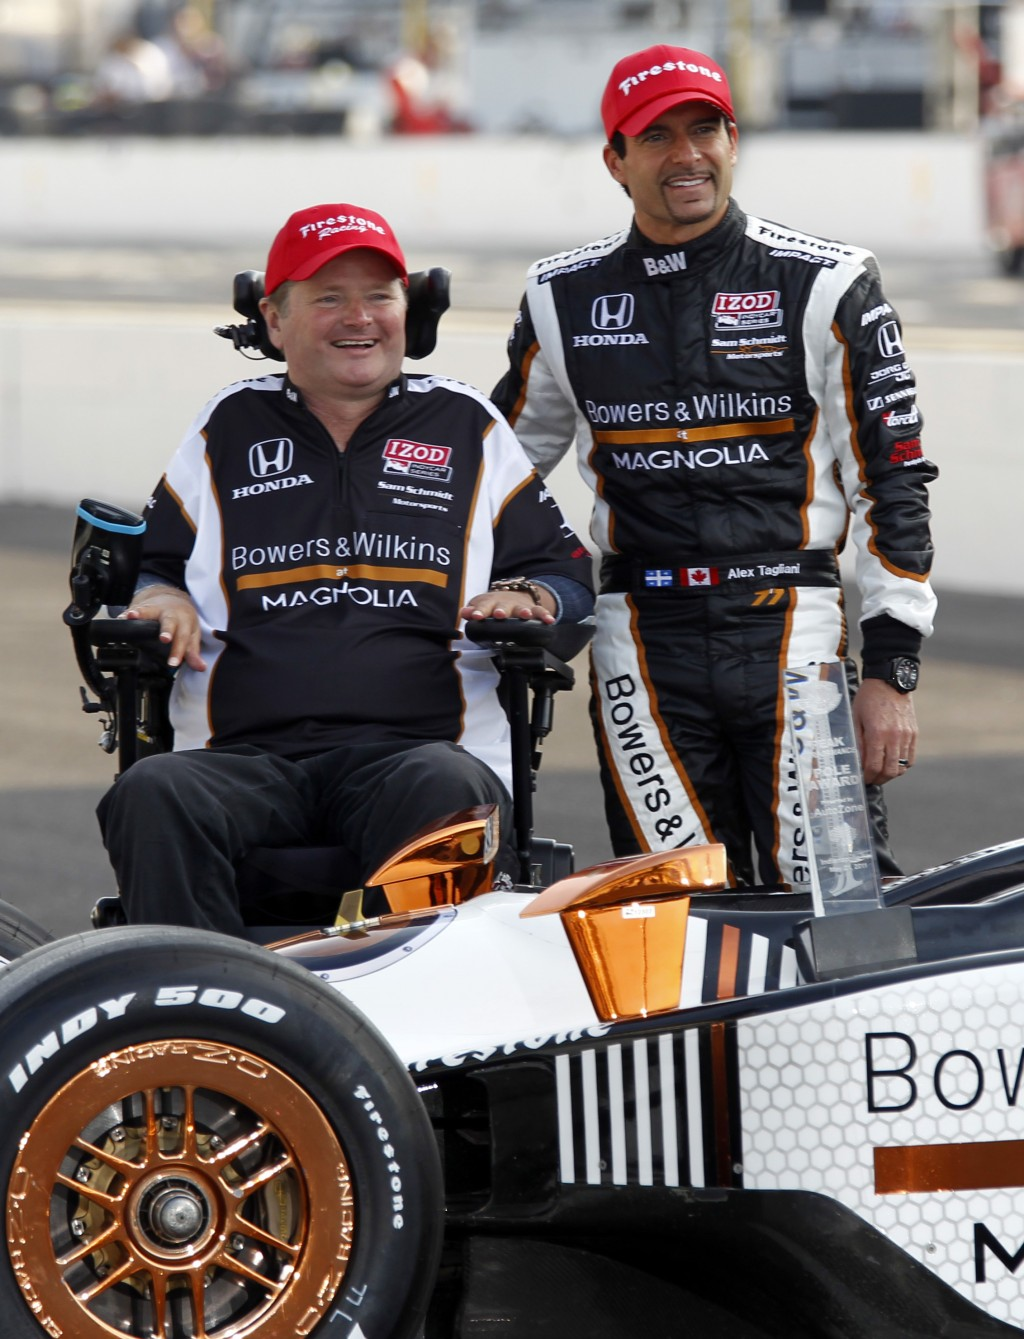 FILE - In this May 22, 2011 file photo, pole sitter Alex Tagliani, right, of Canada, poses with car owner Sam Schmidt on the start/finish line at the